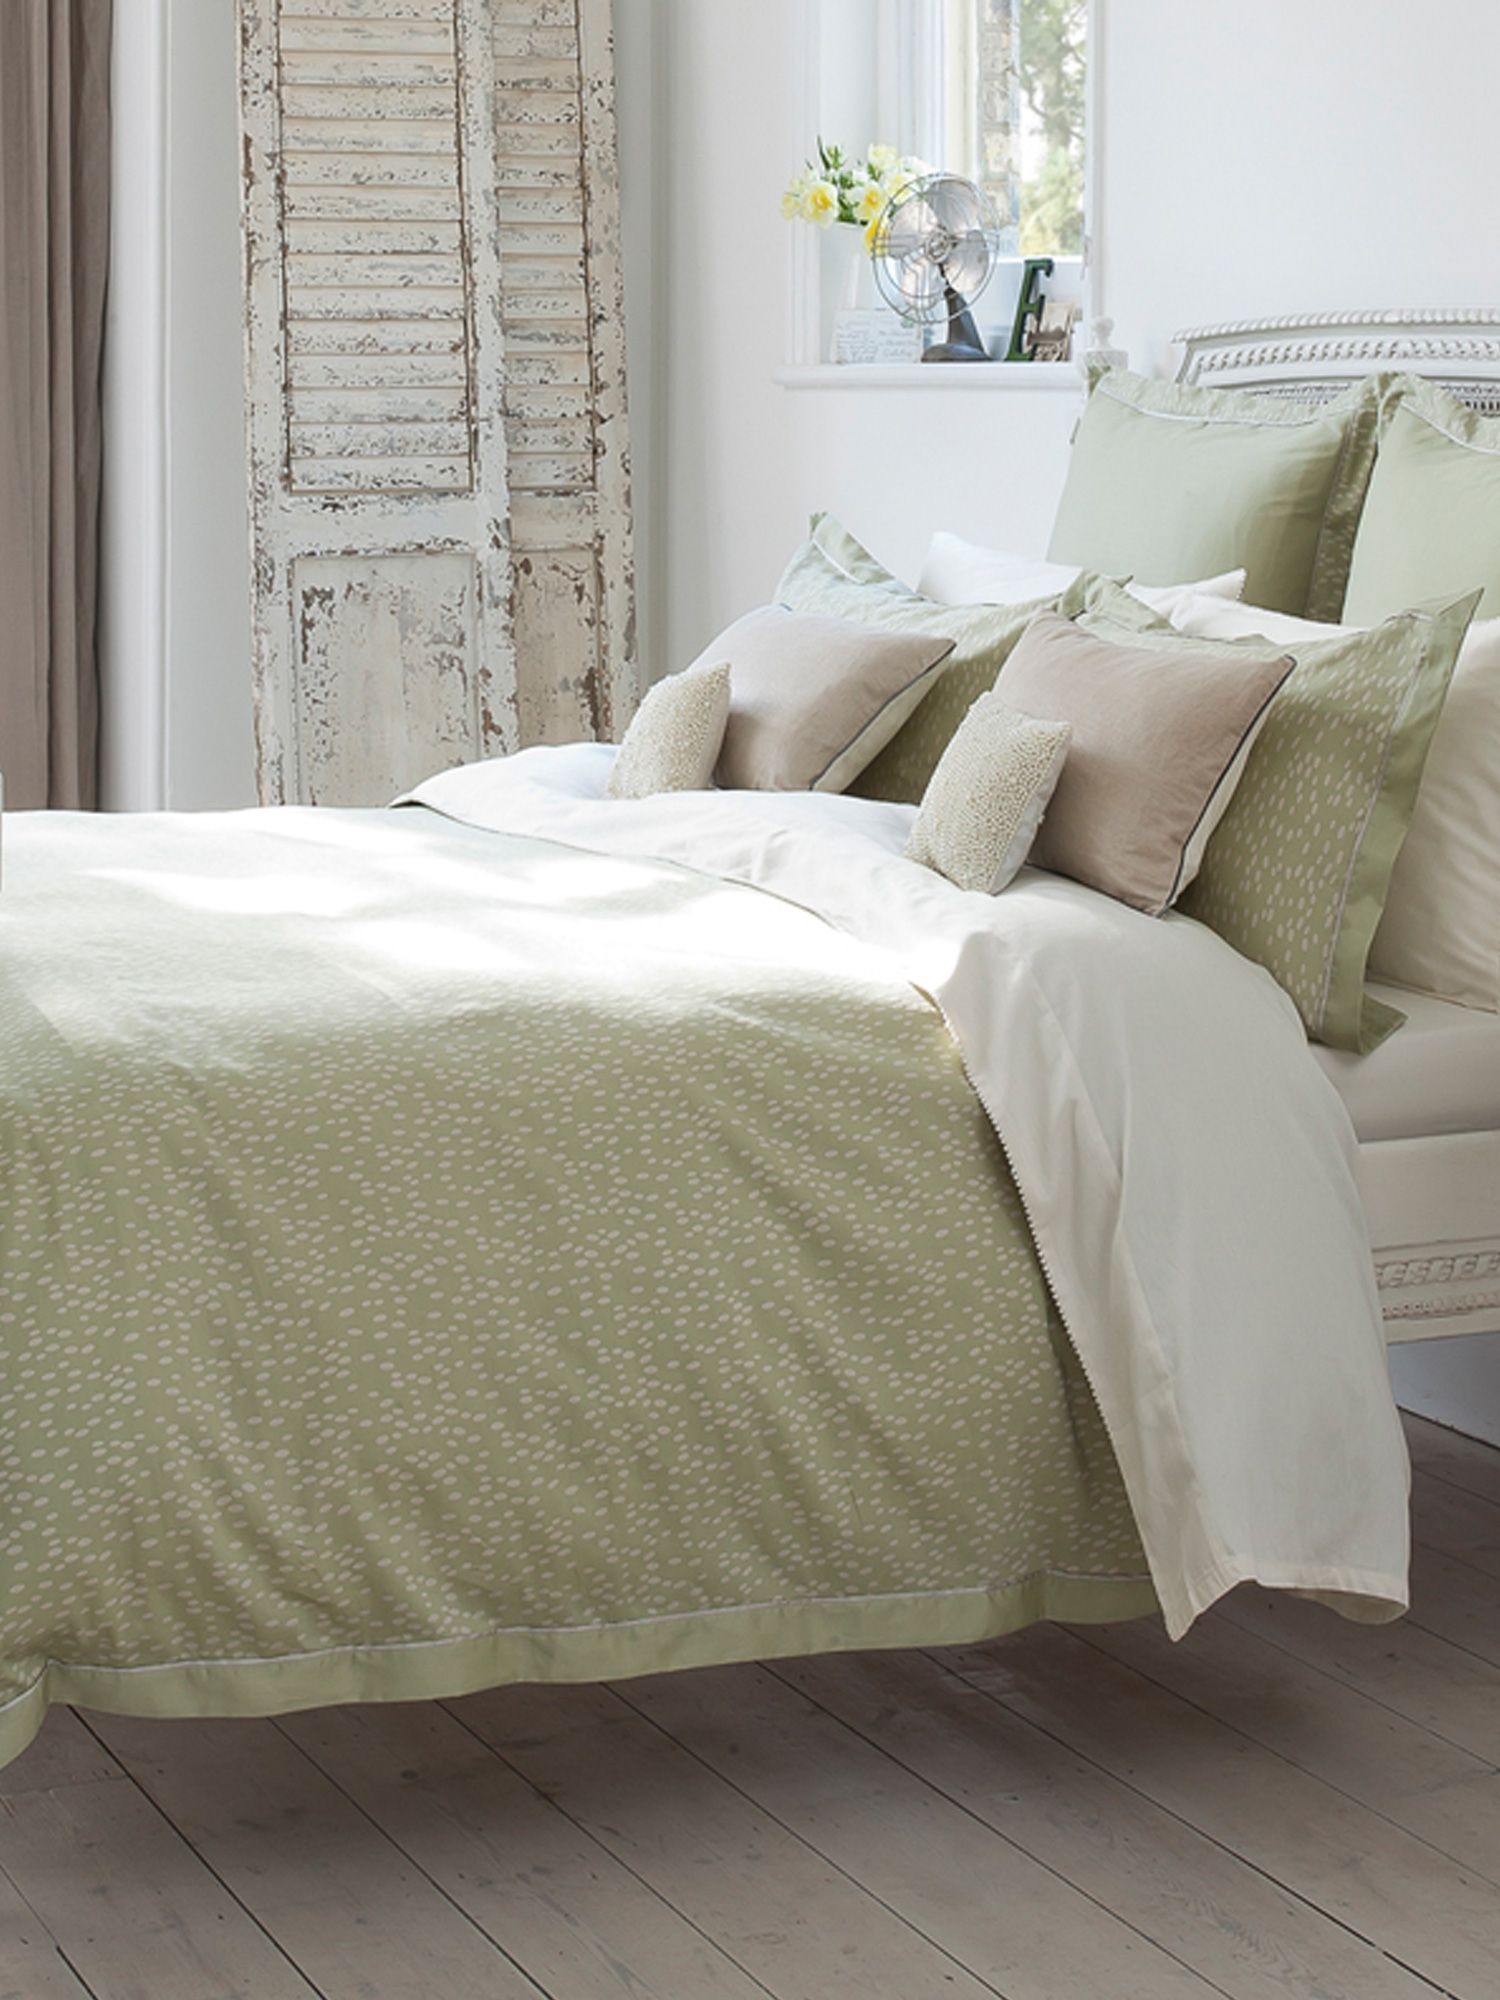 Christy Evelyn double duvet sage green